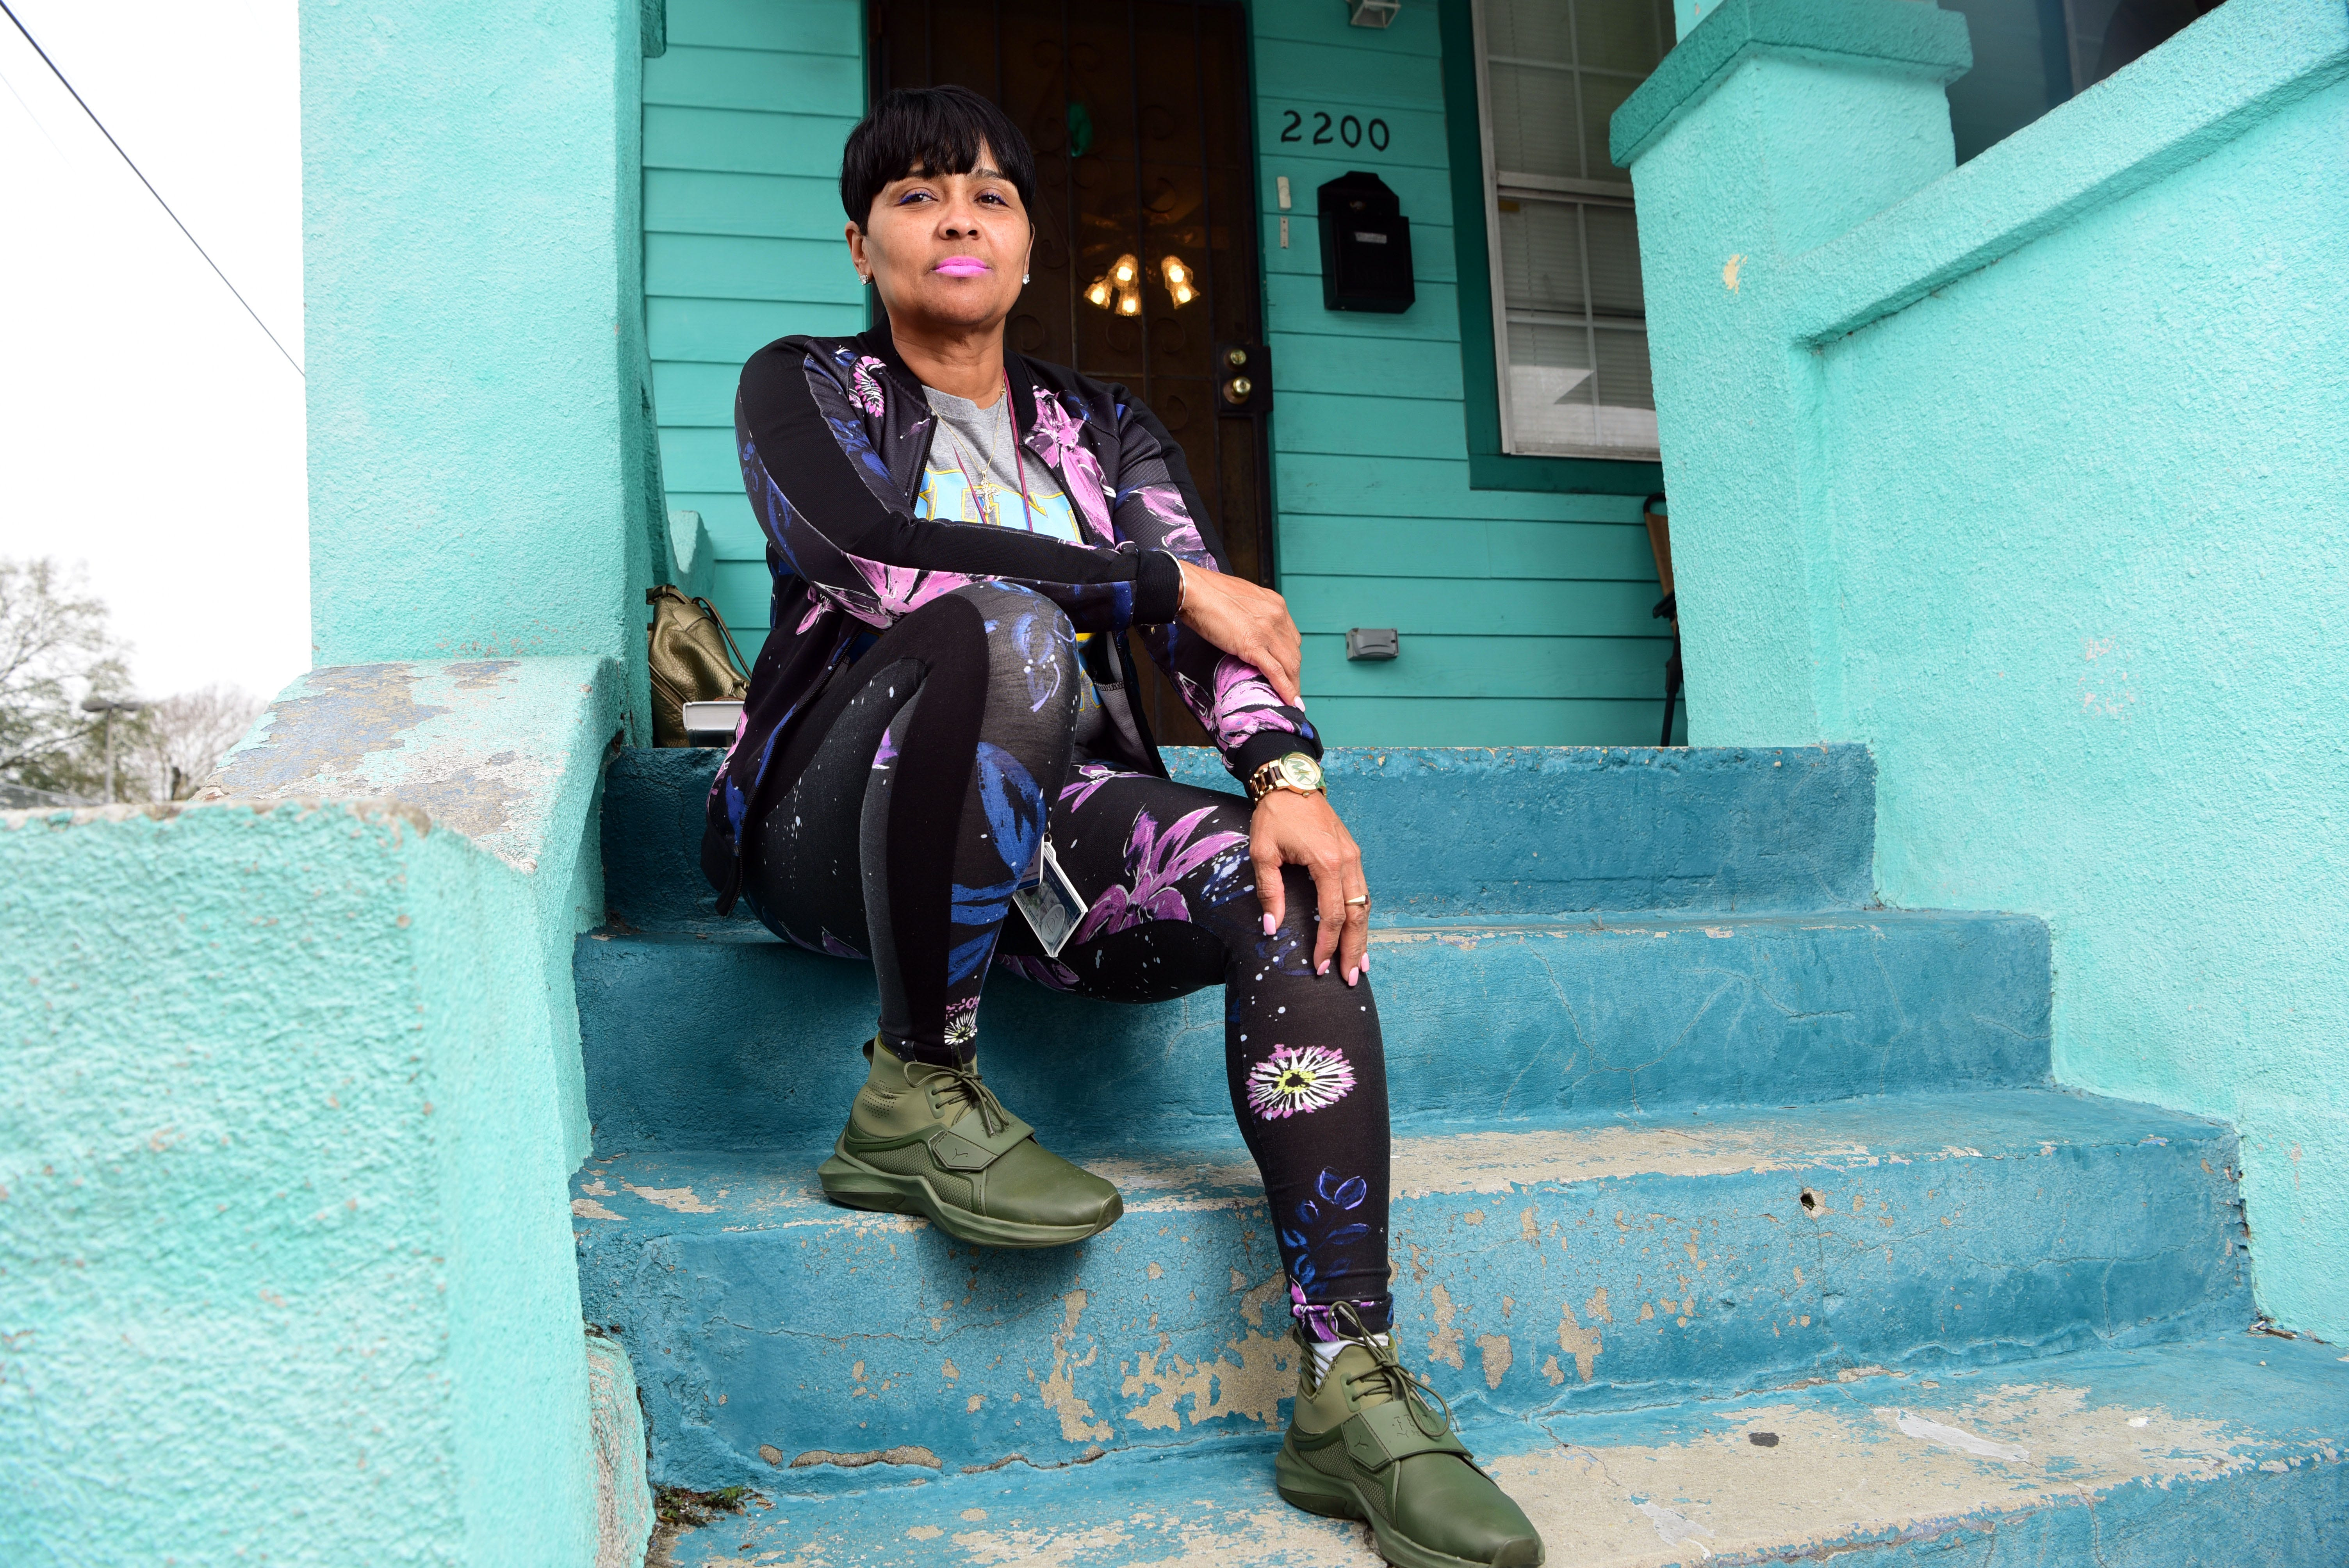 """Danielle Metz says she's """"living my best life"""" in New Orleans. During the spring semester, she was living in the childhood home she inherited from her parents, taking online classes and working as a """"violence interrupter"""" at local hospitals when a young person is shot."""